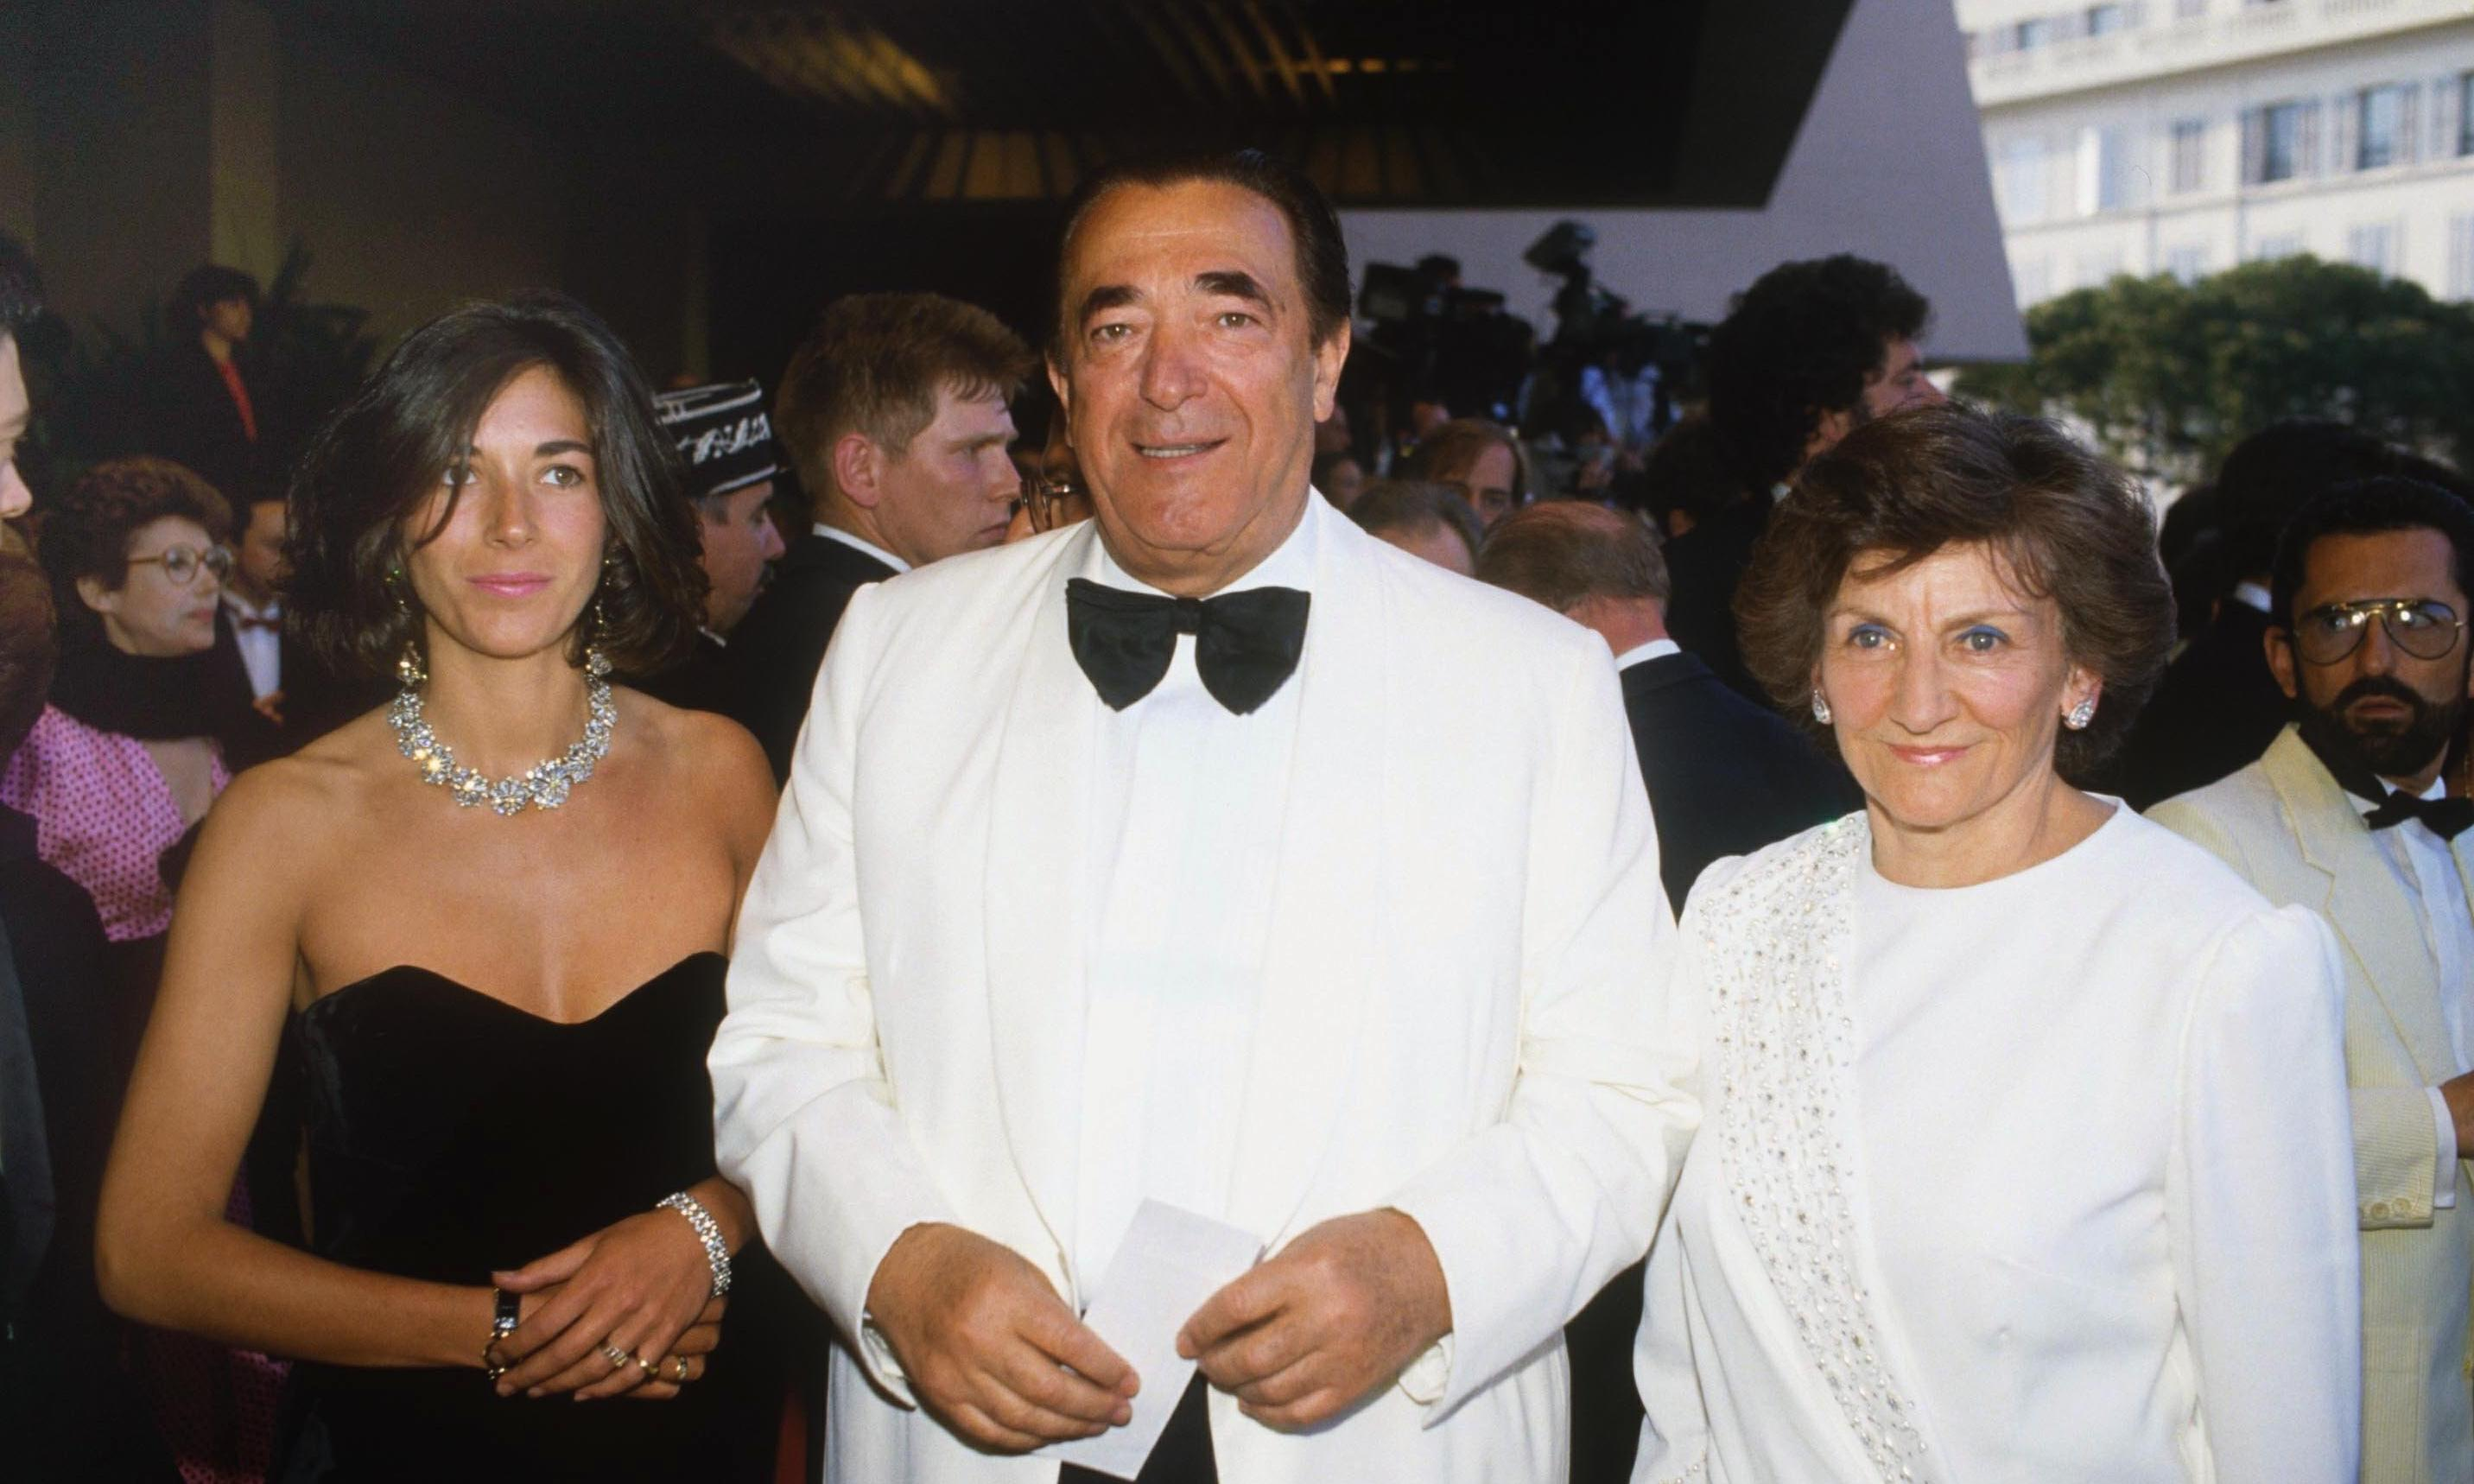 The murky life and death of Robert Maxwell – and how it shaped his daughter Ghislaine